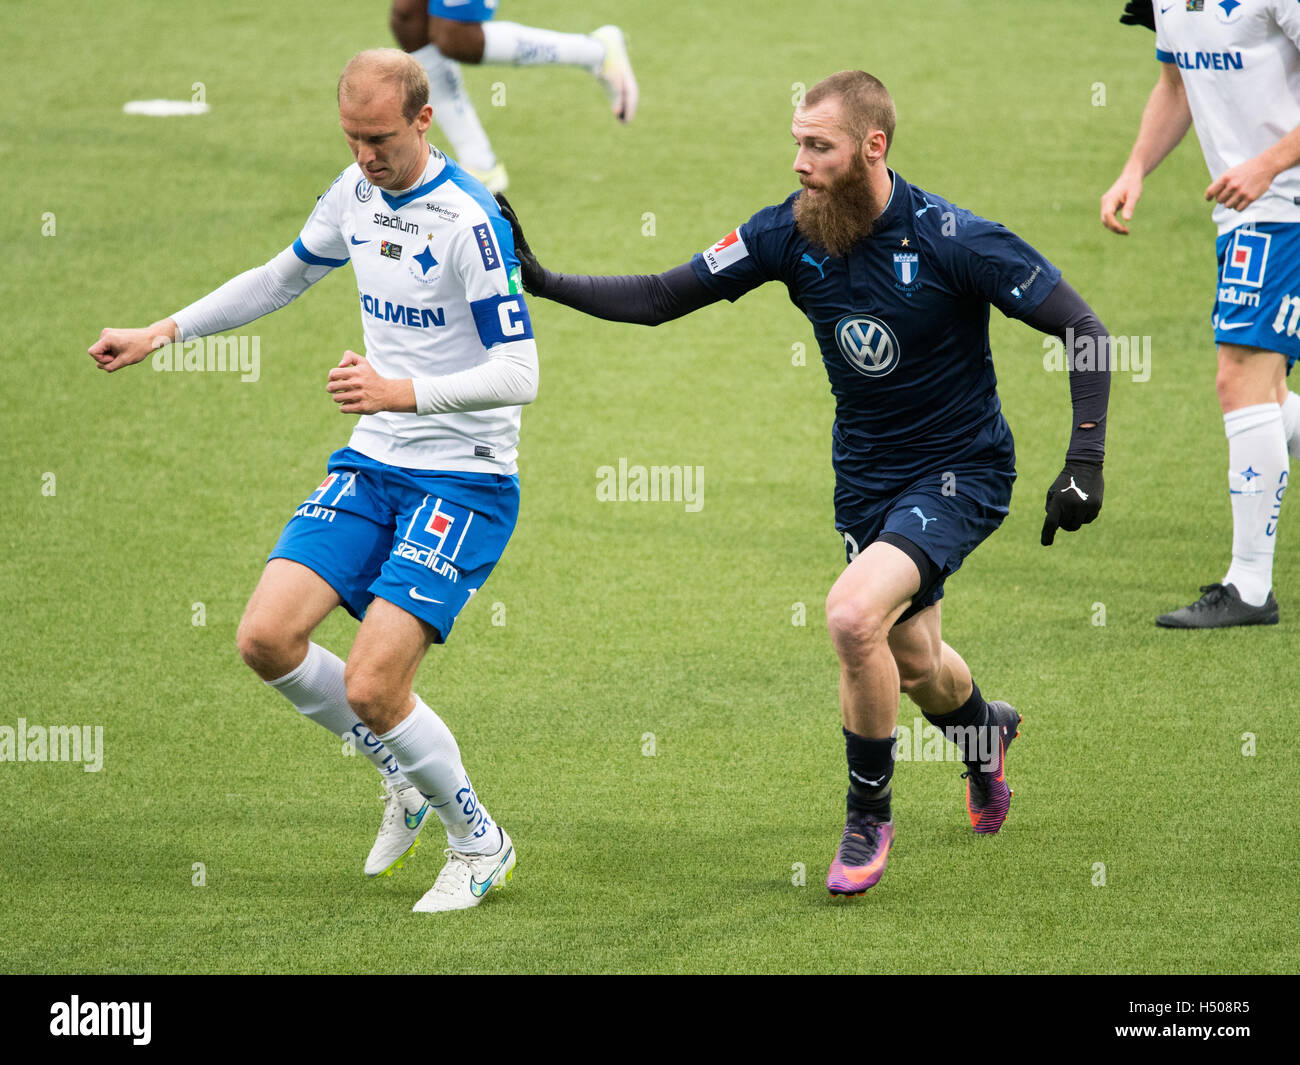 The tow top teams in the Swedish football league Allsvenskan IFK Norrköping and Malmö FF meet at Östgötaporten - Stock Image